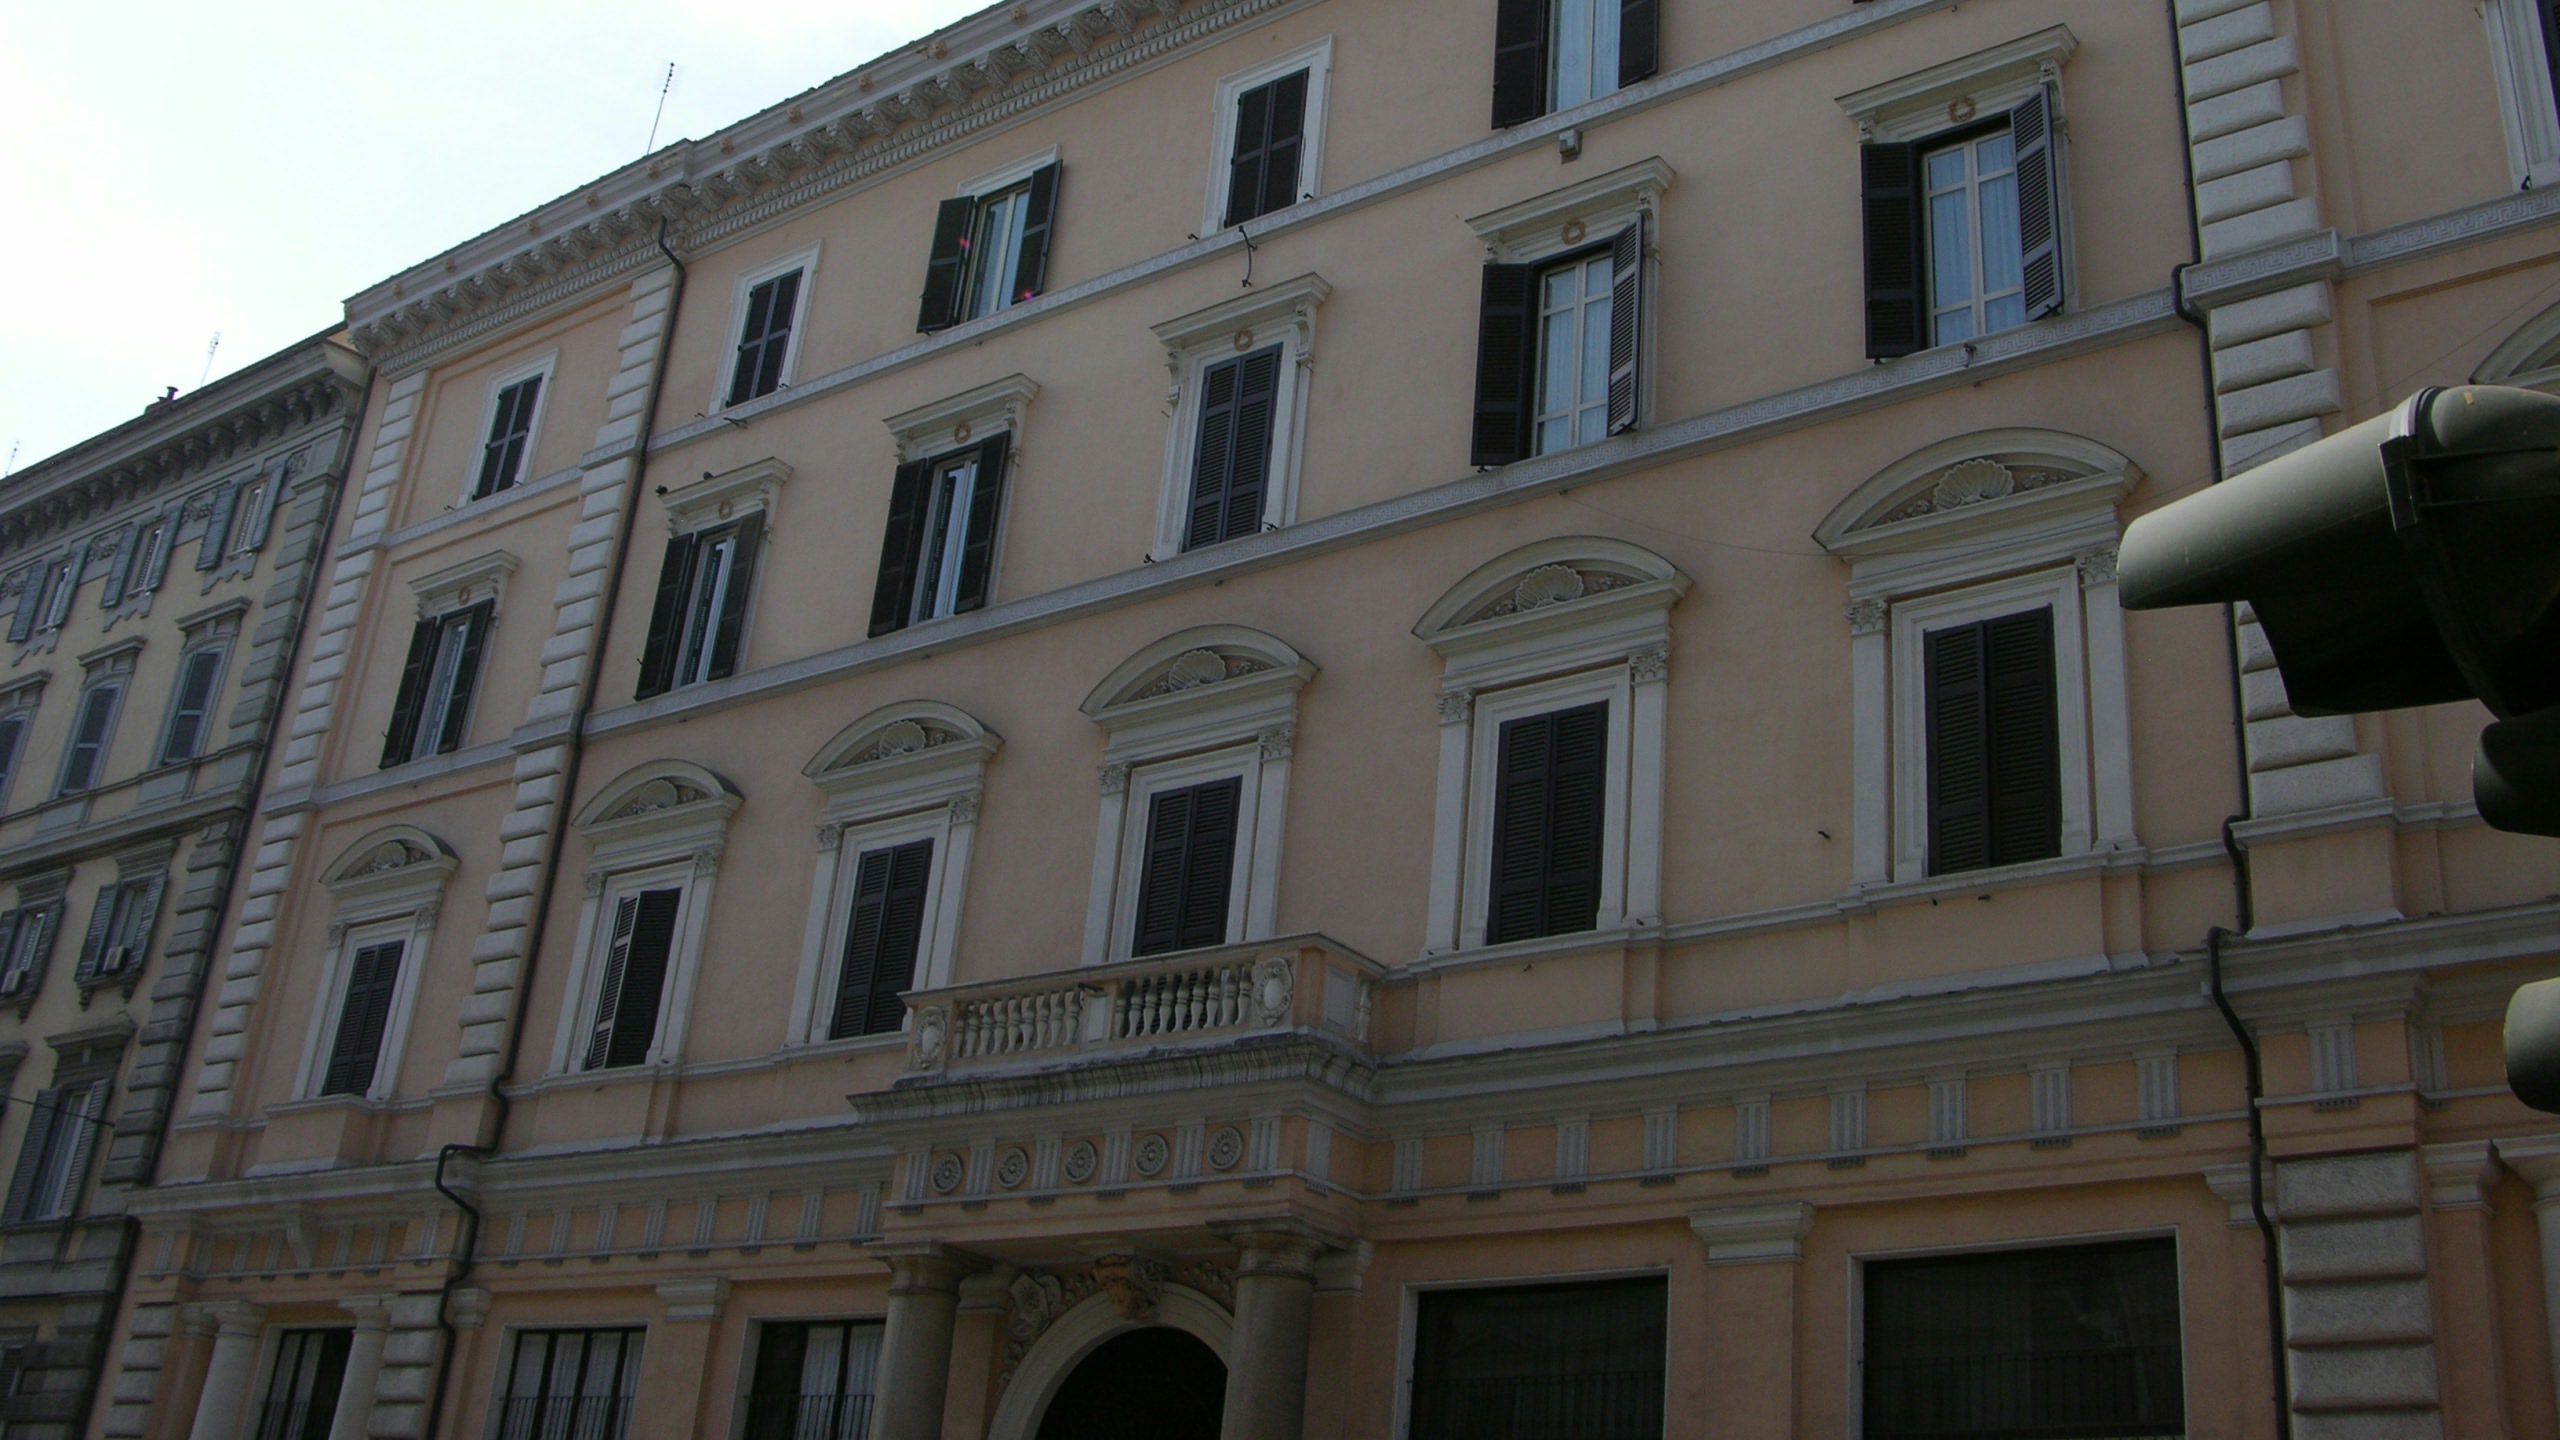 colosseo-suites-rome-externo-01